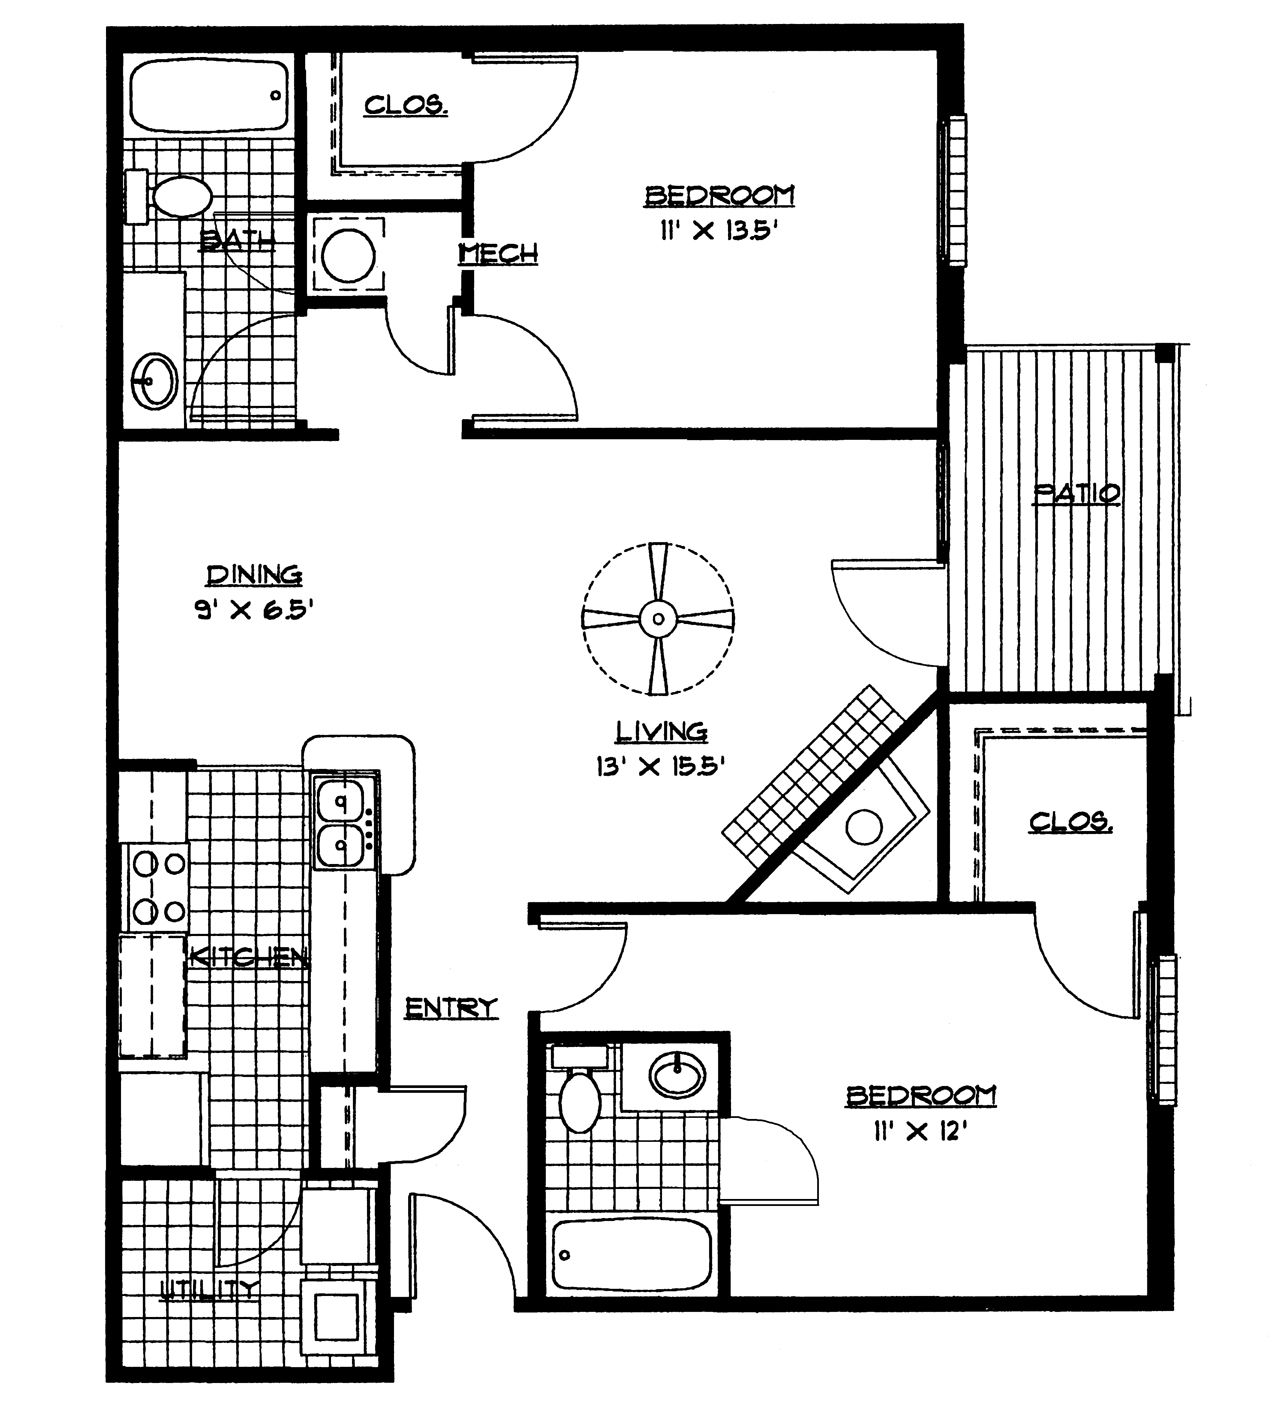 6X8 Bathroom Layout besides 2 Bedroom House Plans besides 55762116c0ba9bf6 Tiny House Floor Plans 10x12 Small Tiny House Floor Plans furthermore Superb Draw House Plans Free 6 Draw House Plans Online For Free Home Design furthermore Home Plans With Two Bedrooms Downstairs. on modern tiny house floor plans